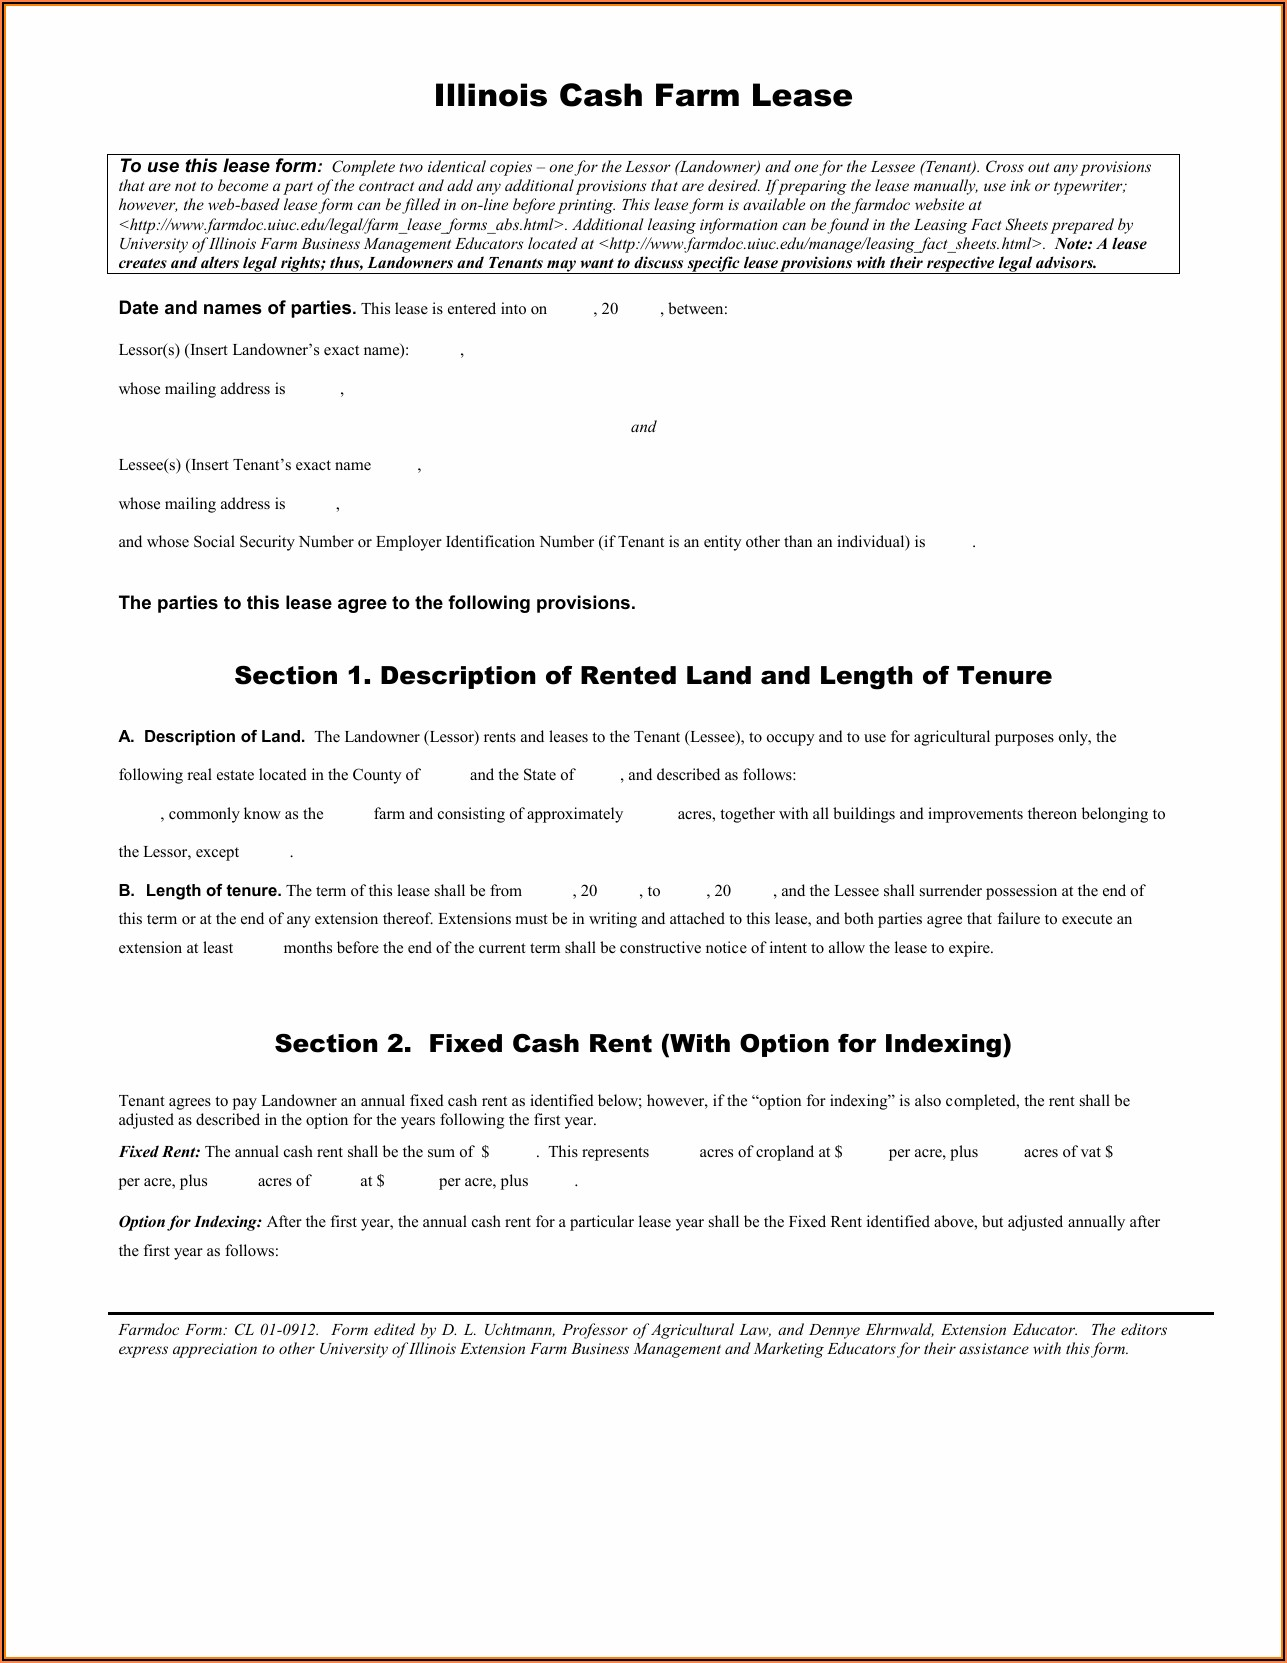 Illinois Cash Farm Lease Template